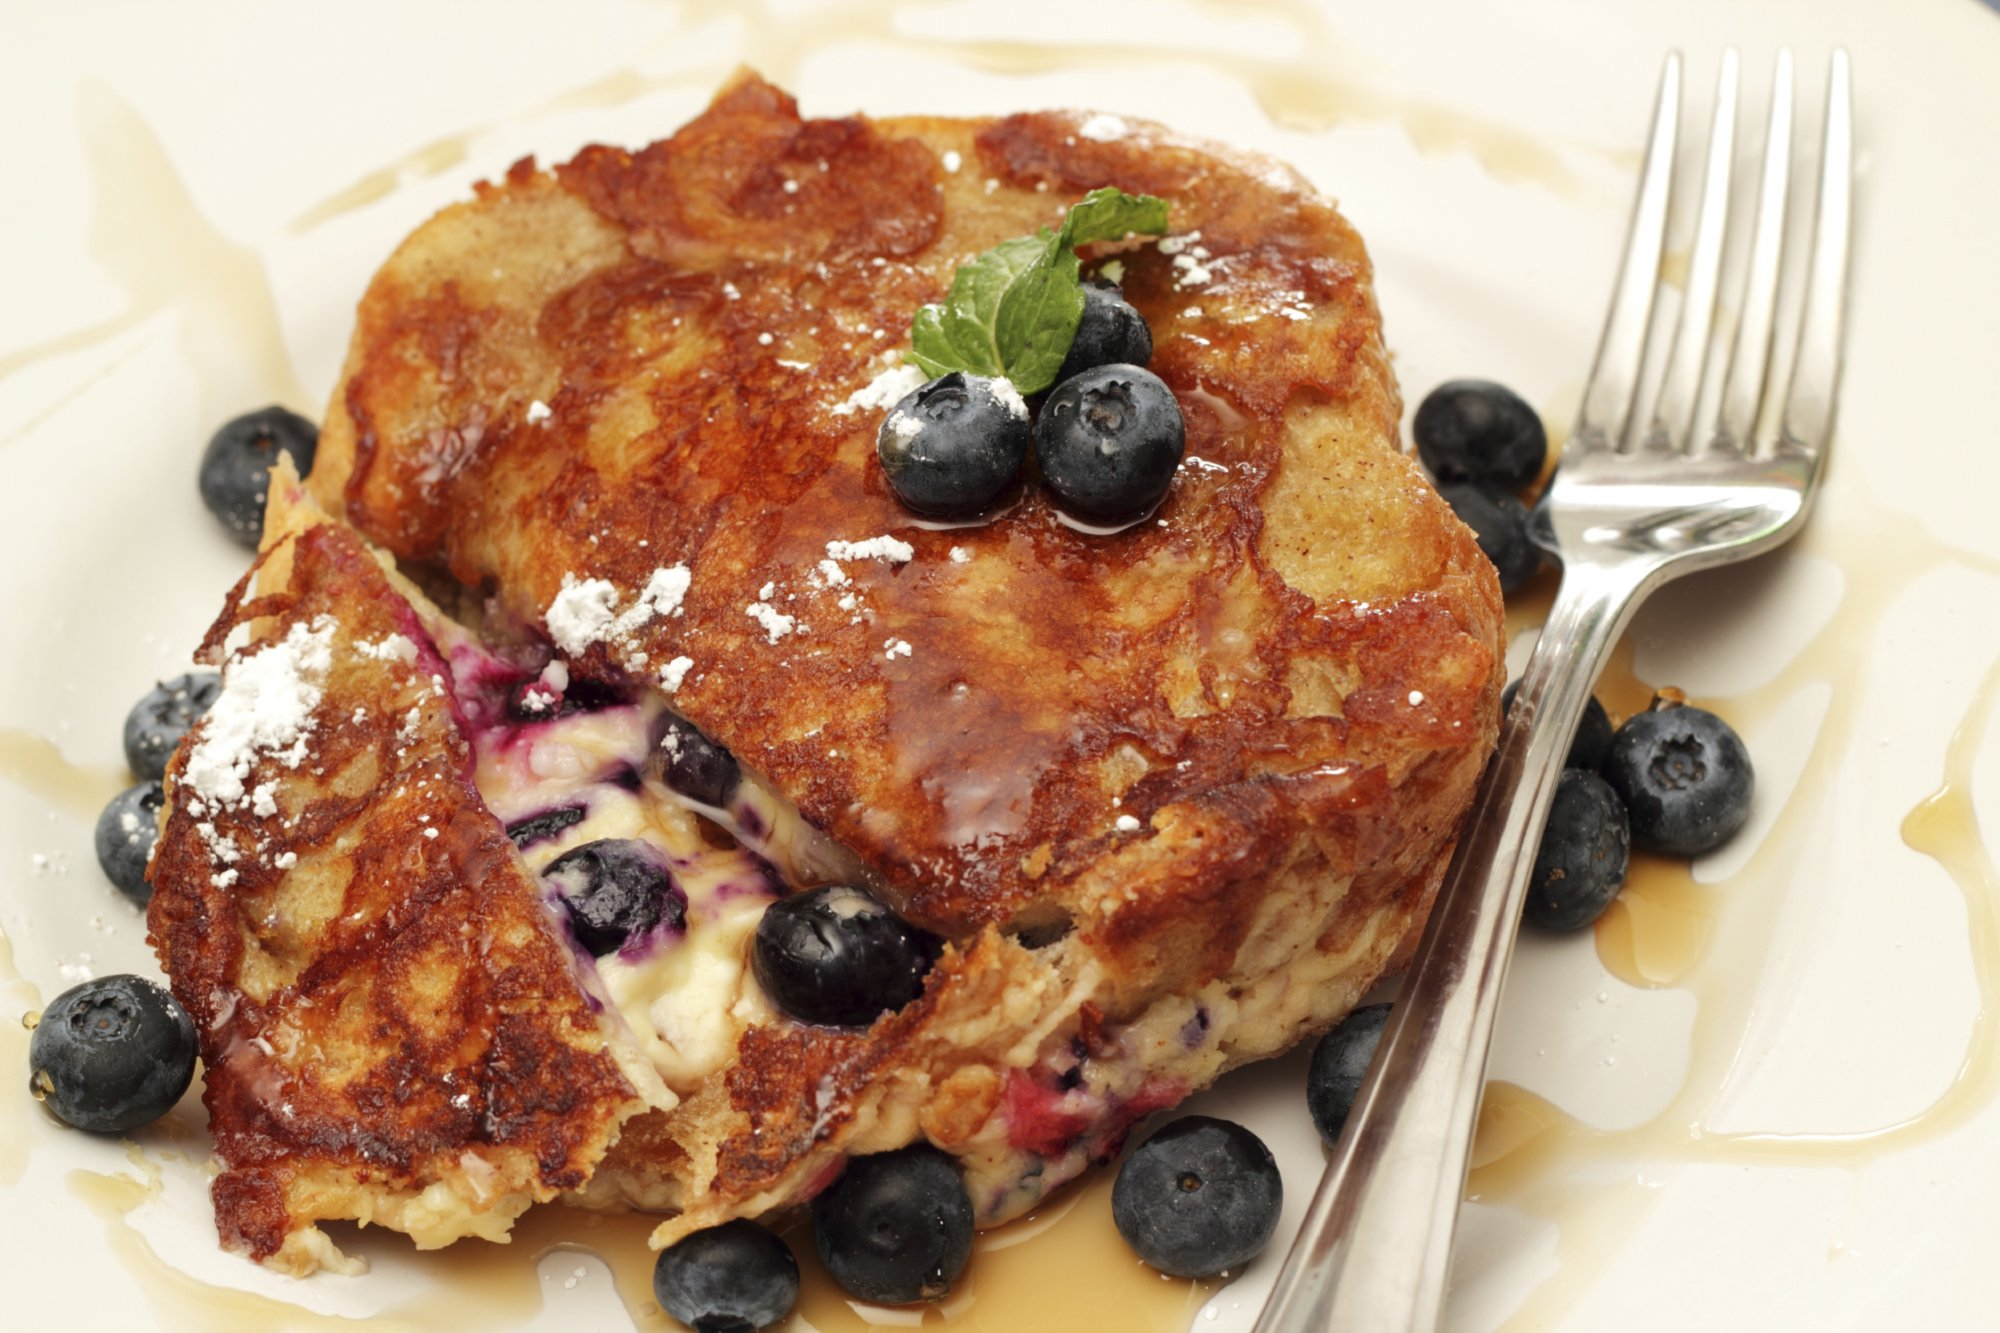 Mascarpone Stuffed French Toast with Blueberries and Walnuts